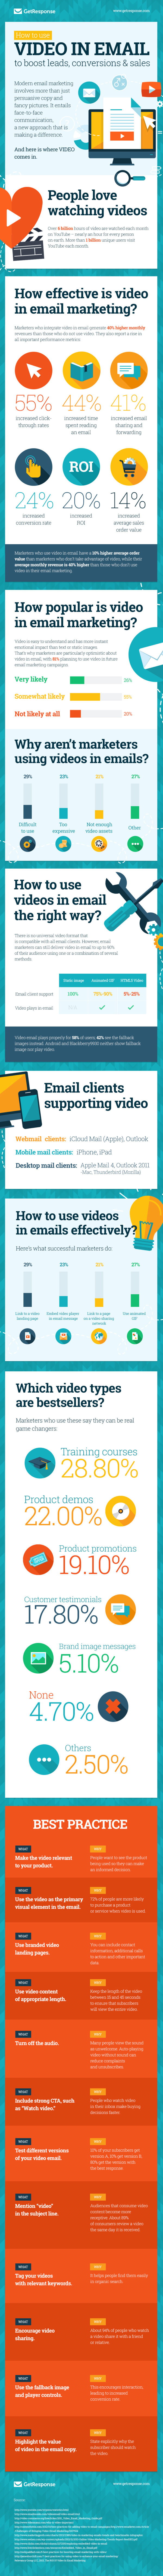 video-in-email-infographic.jpg